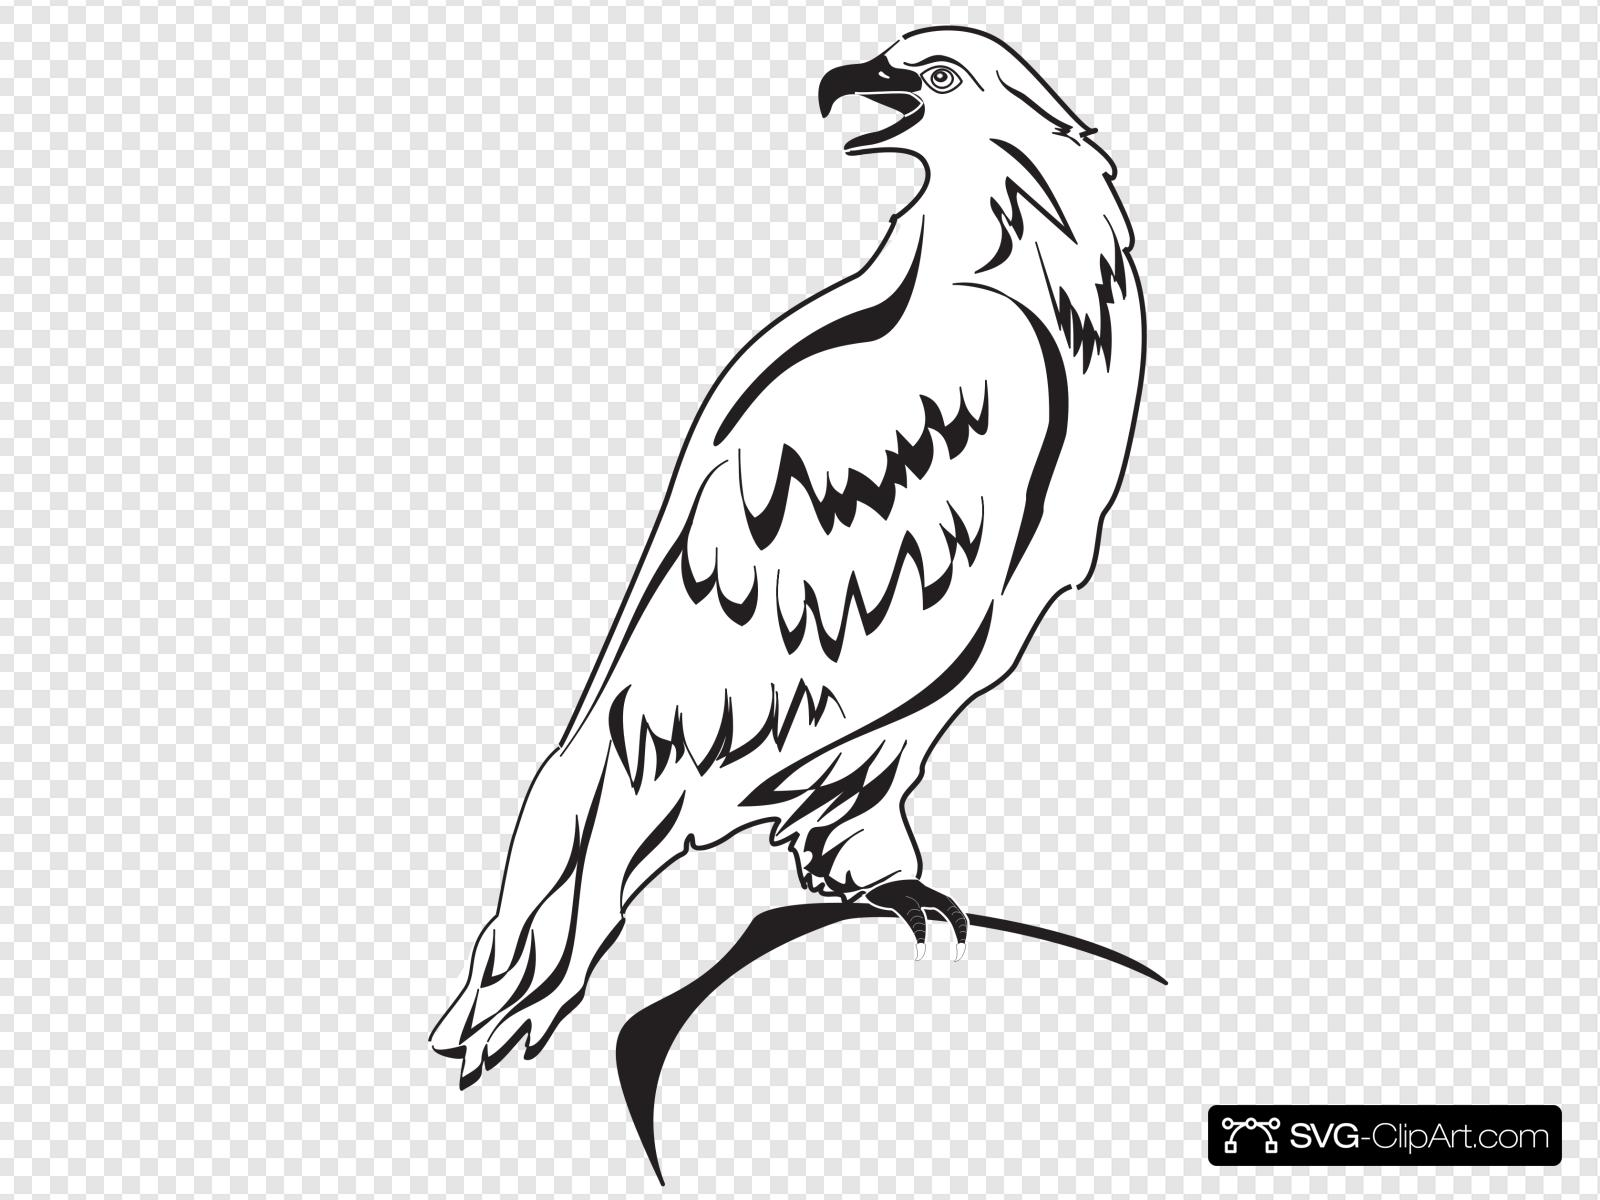 Perched Eagle Outline Clip art, Icon and SVG.